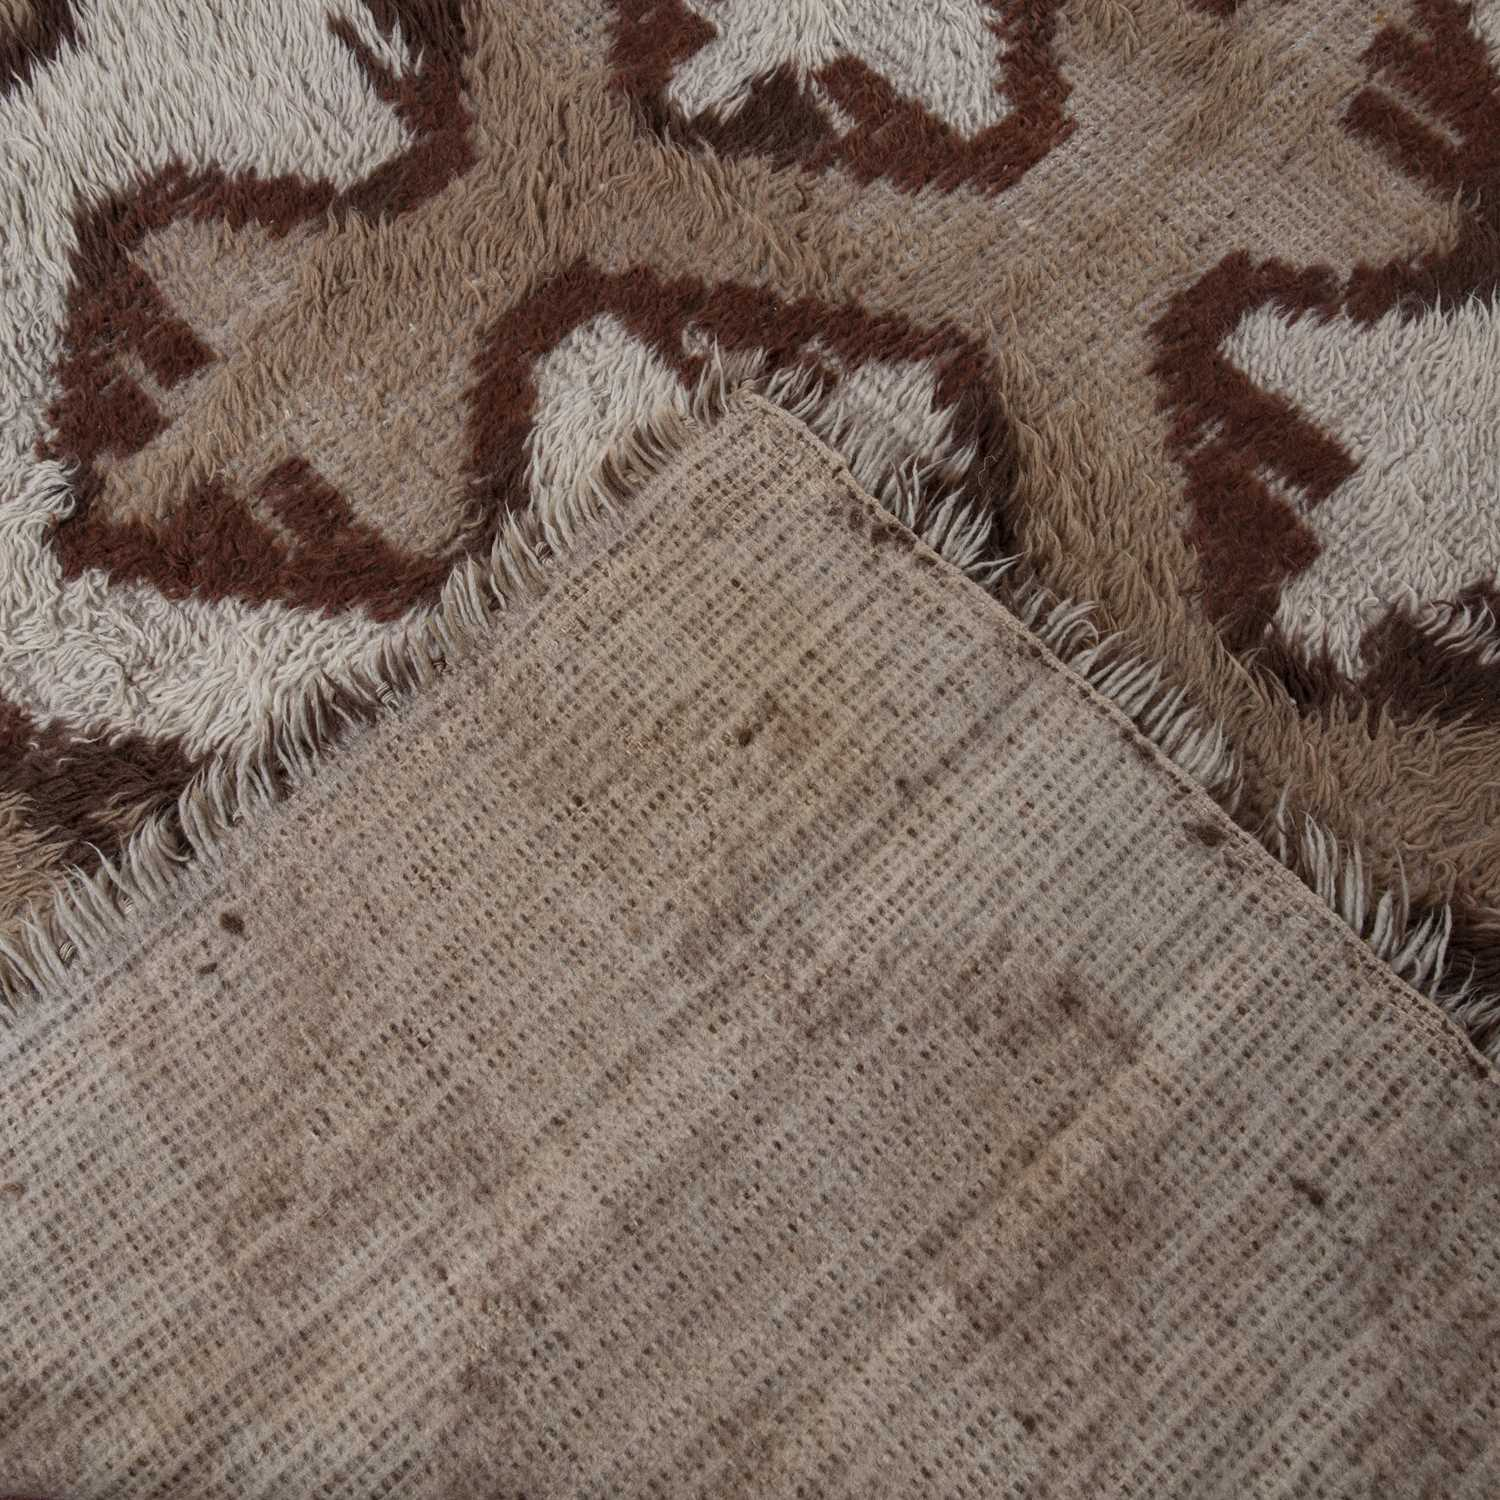 A Turkish shag-pile small carpet, white and brown dyes and stylised 'X' design, 252 x 175cm - Image 2 of 2